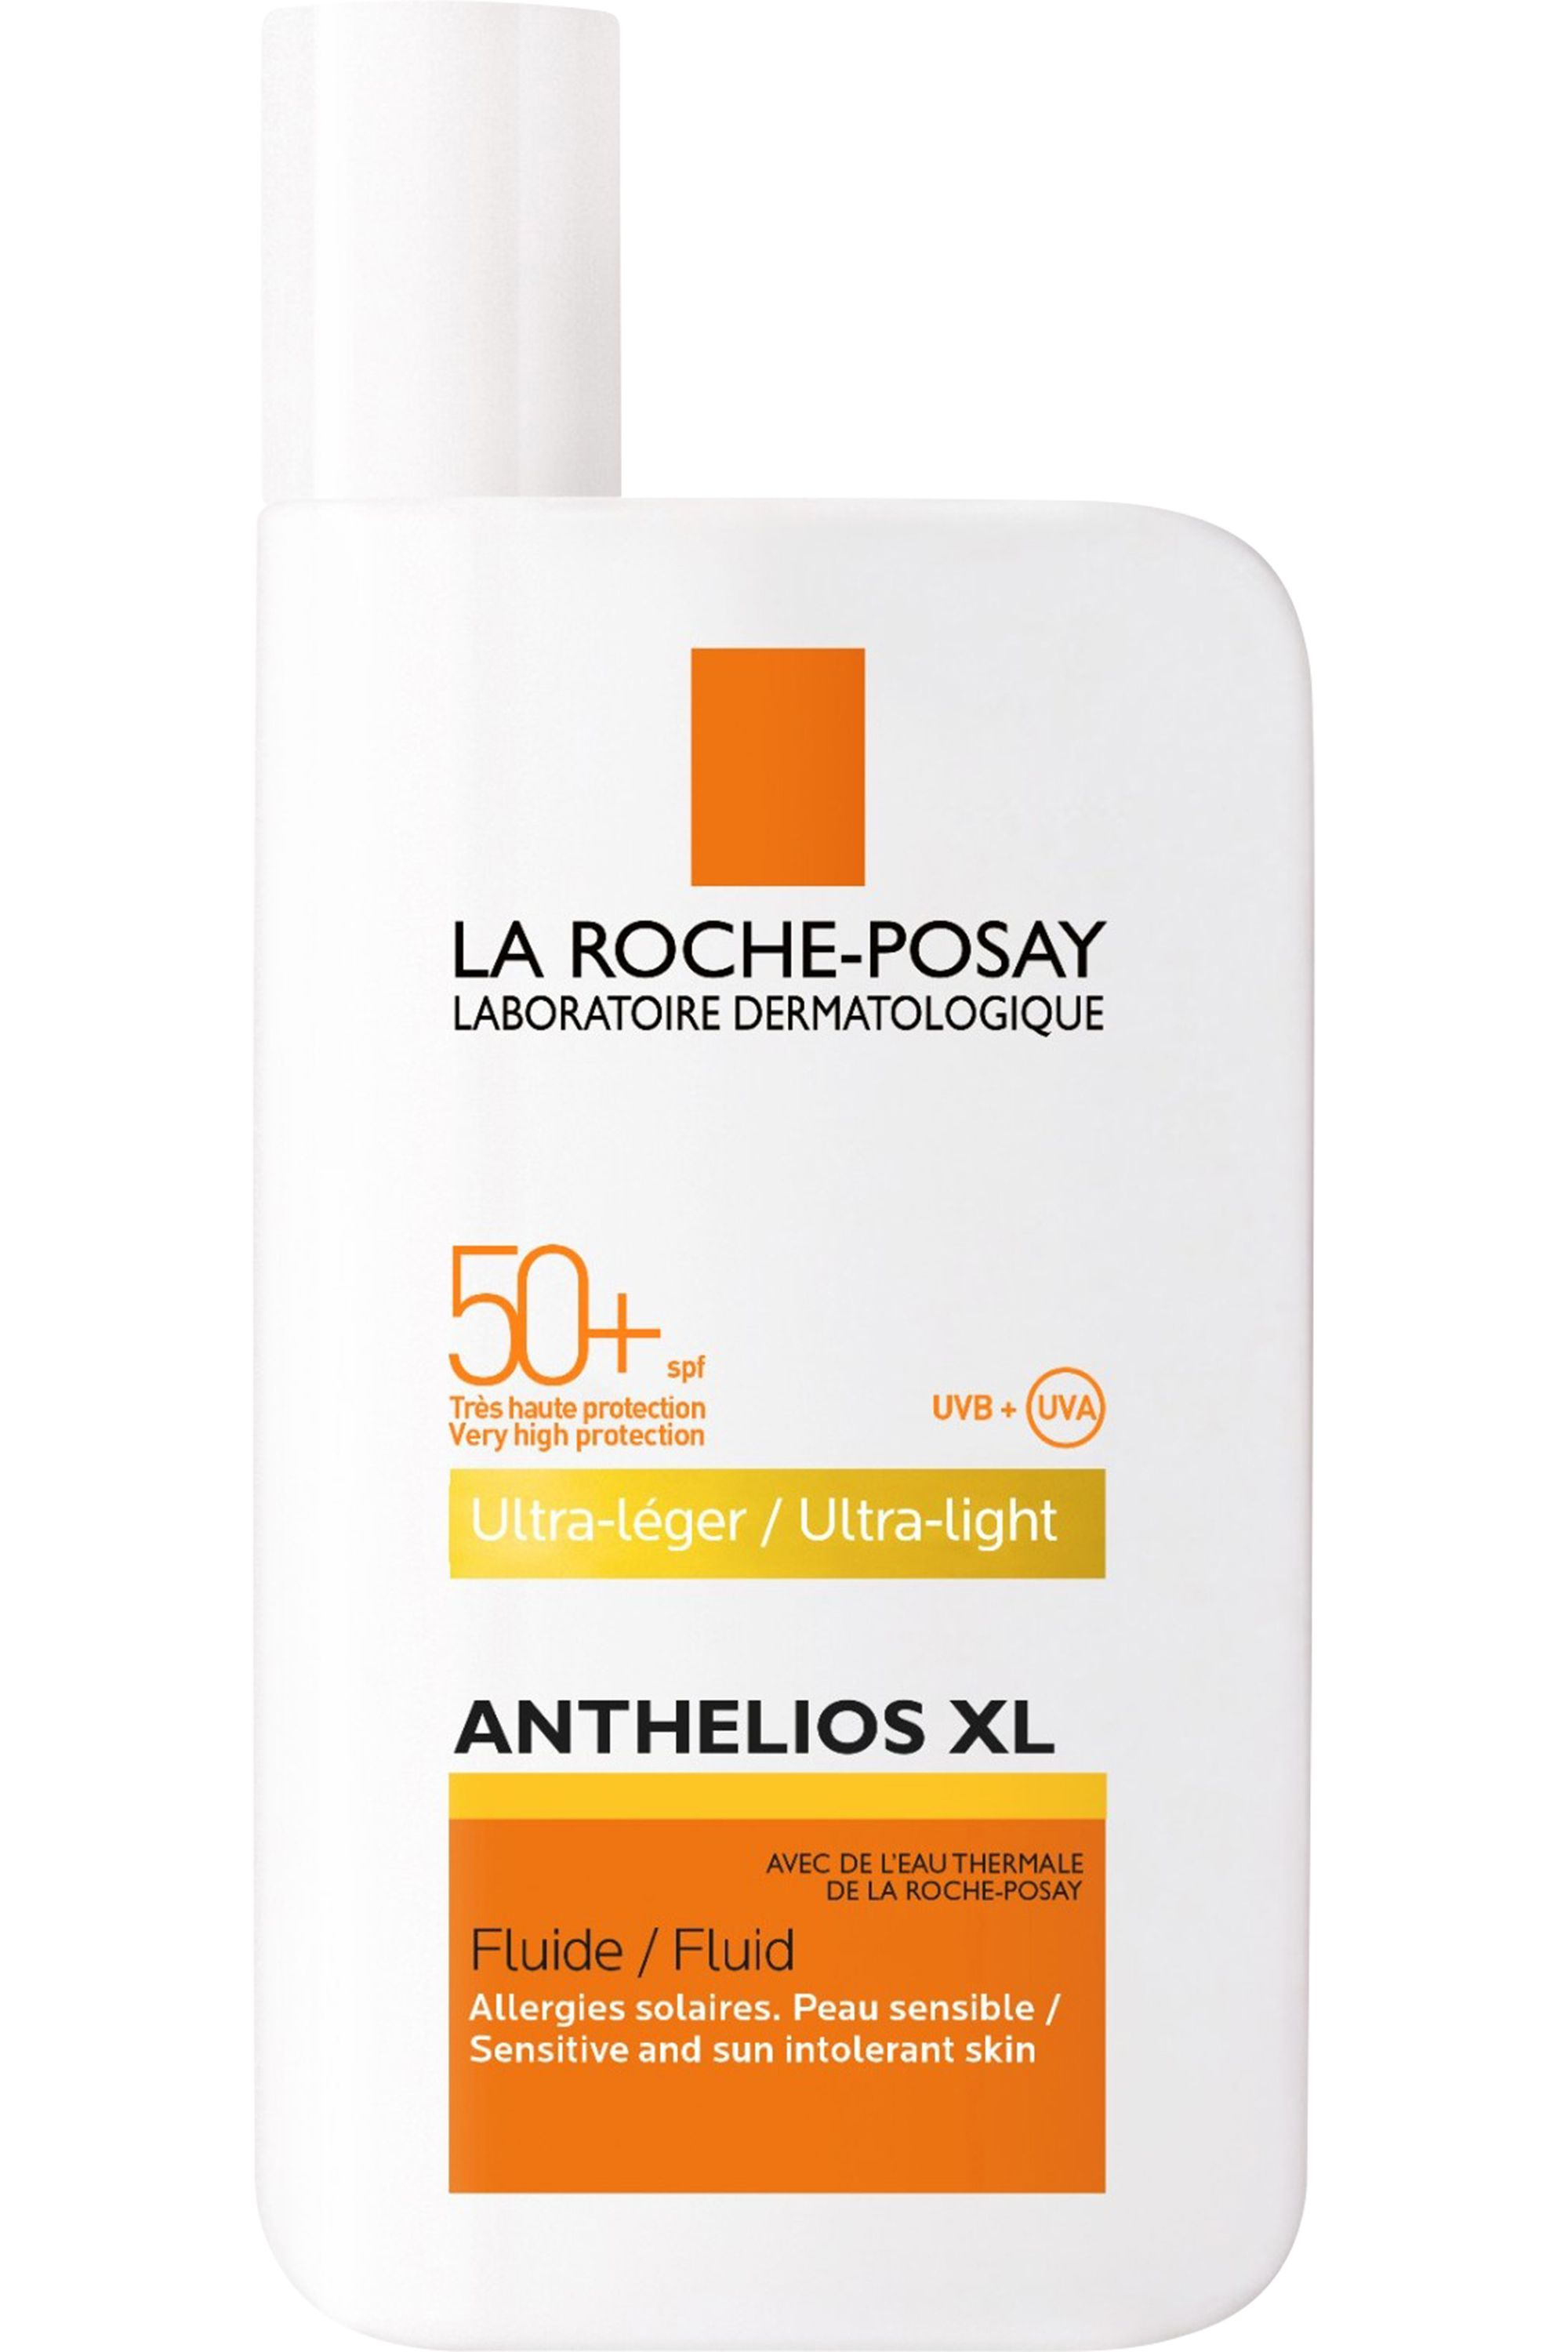 Blissim : La Roche-Posay - Fluide Solaire Ultra Léger SPF 50+ Anthelios - Fluide Solaire Ultra Léger SPF 50+ Anthelios